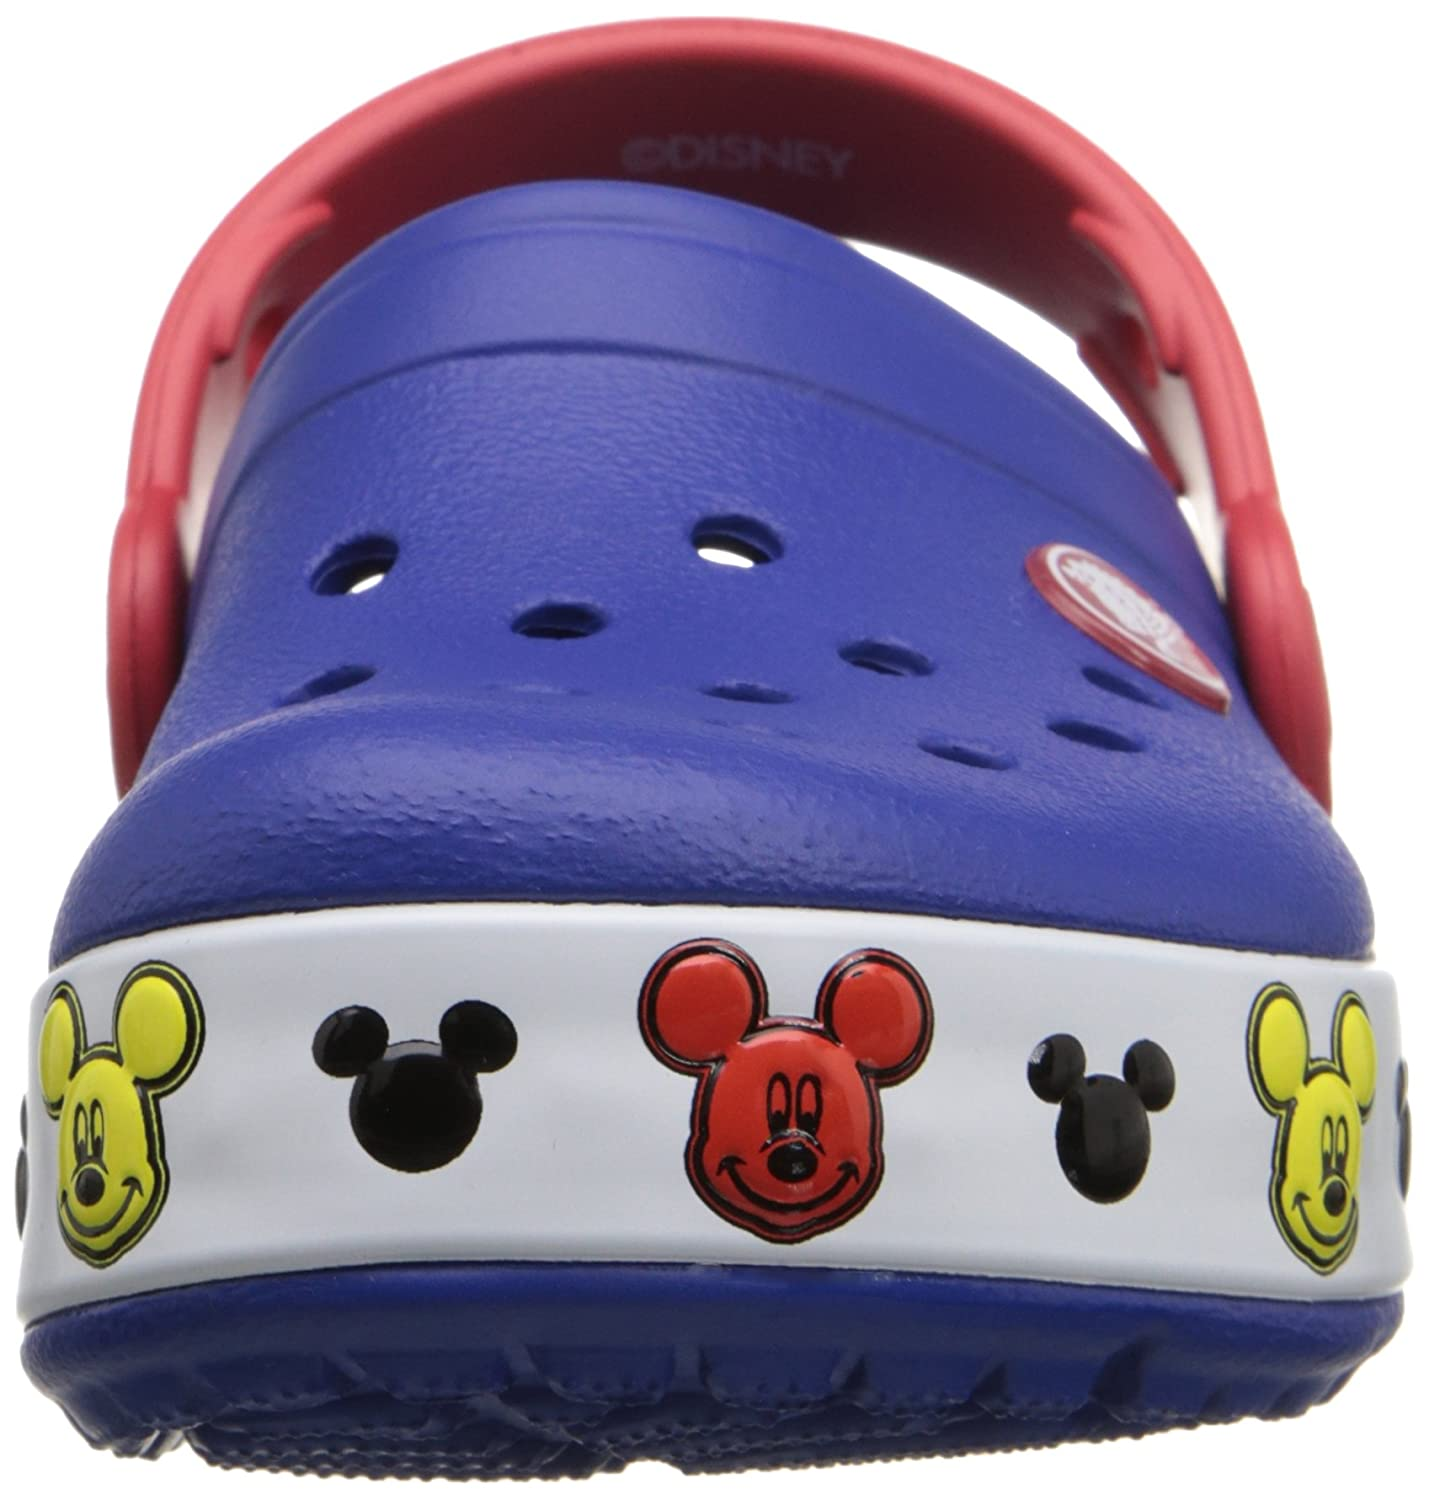 K Crocs Kids Light-Up Mickey Mouse Clog CrocsLights Mickey Clog K